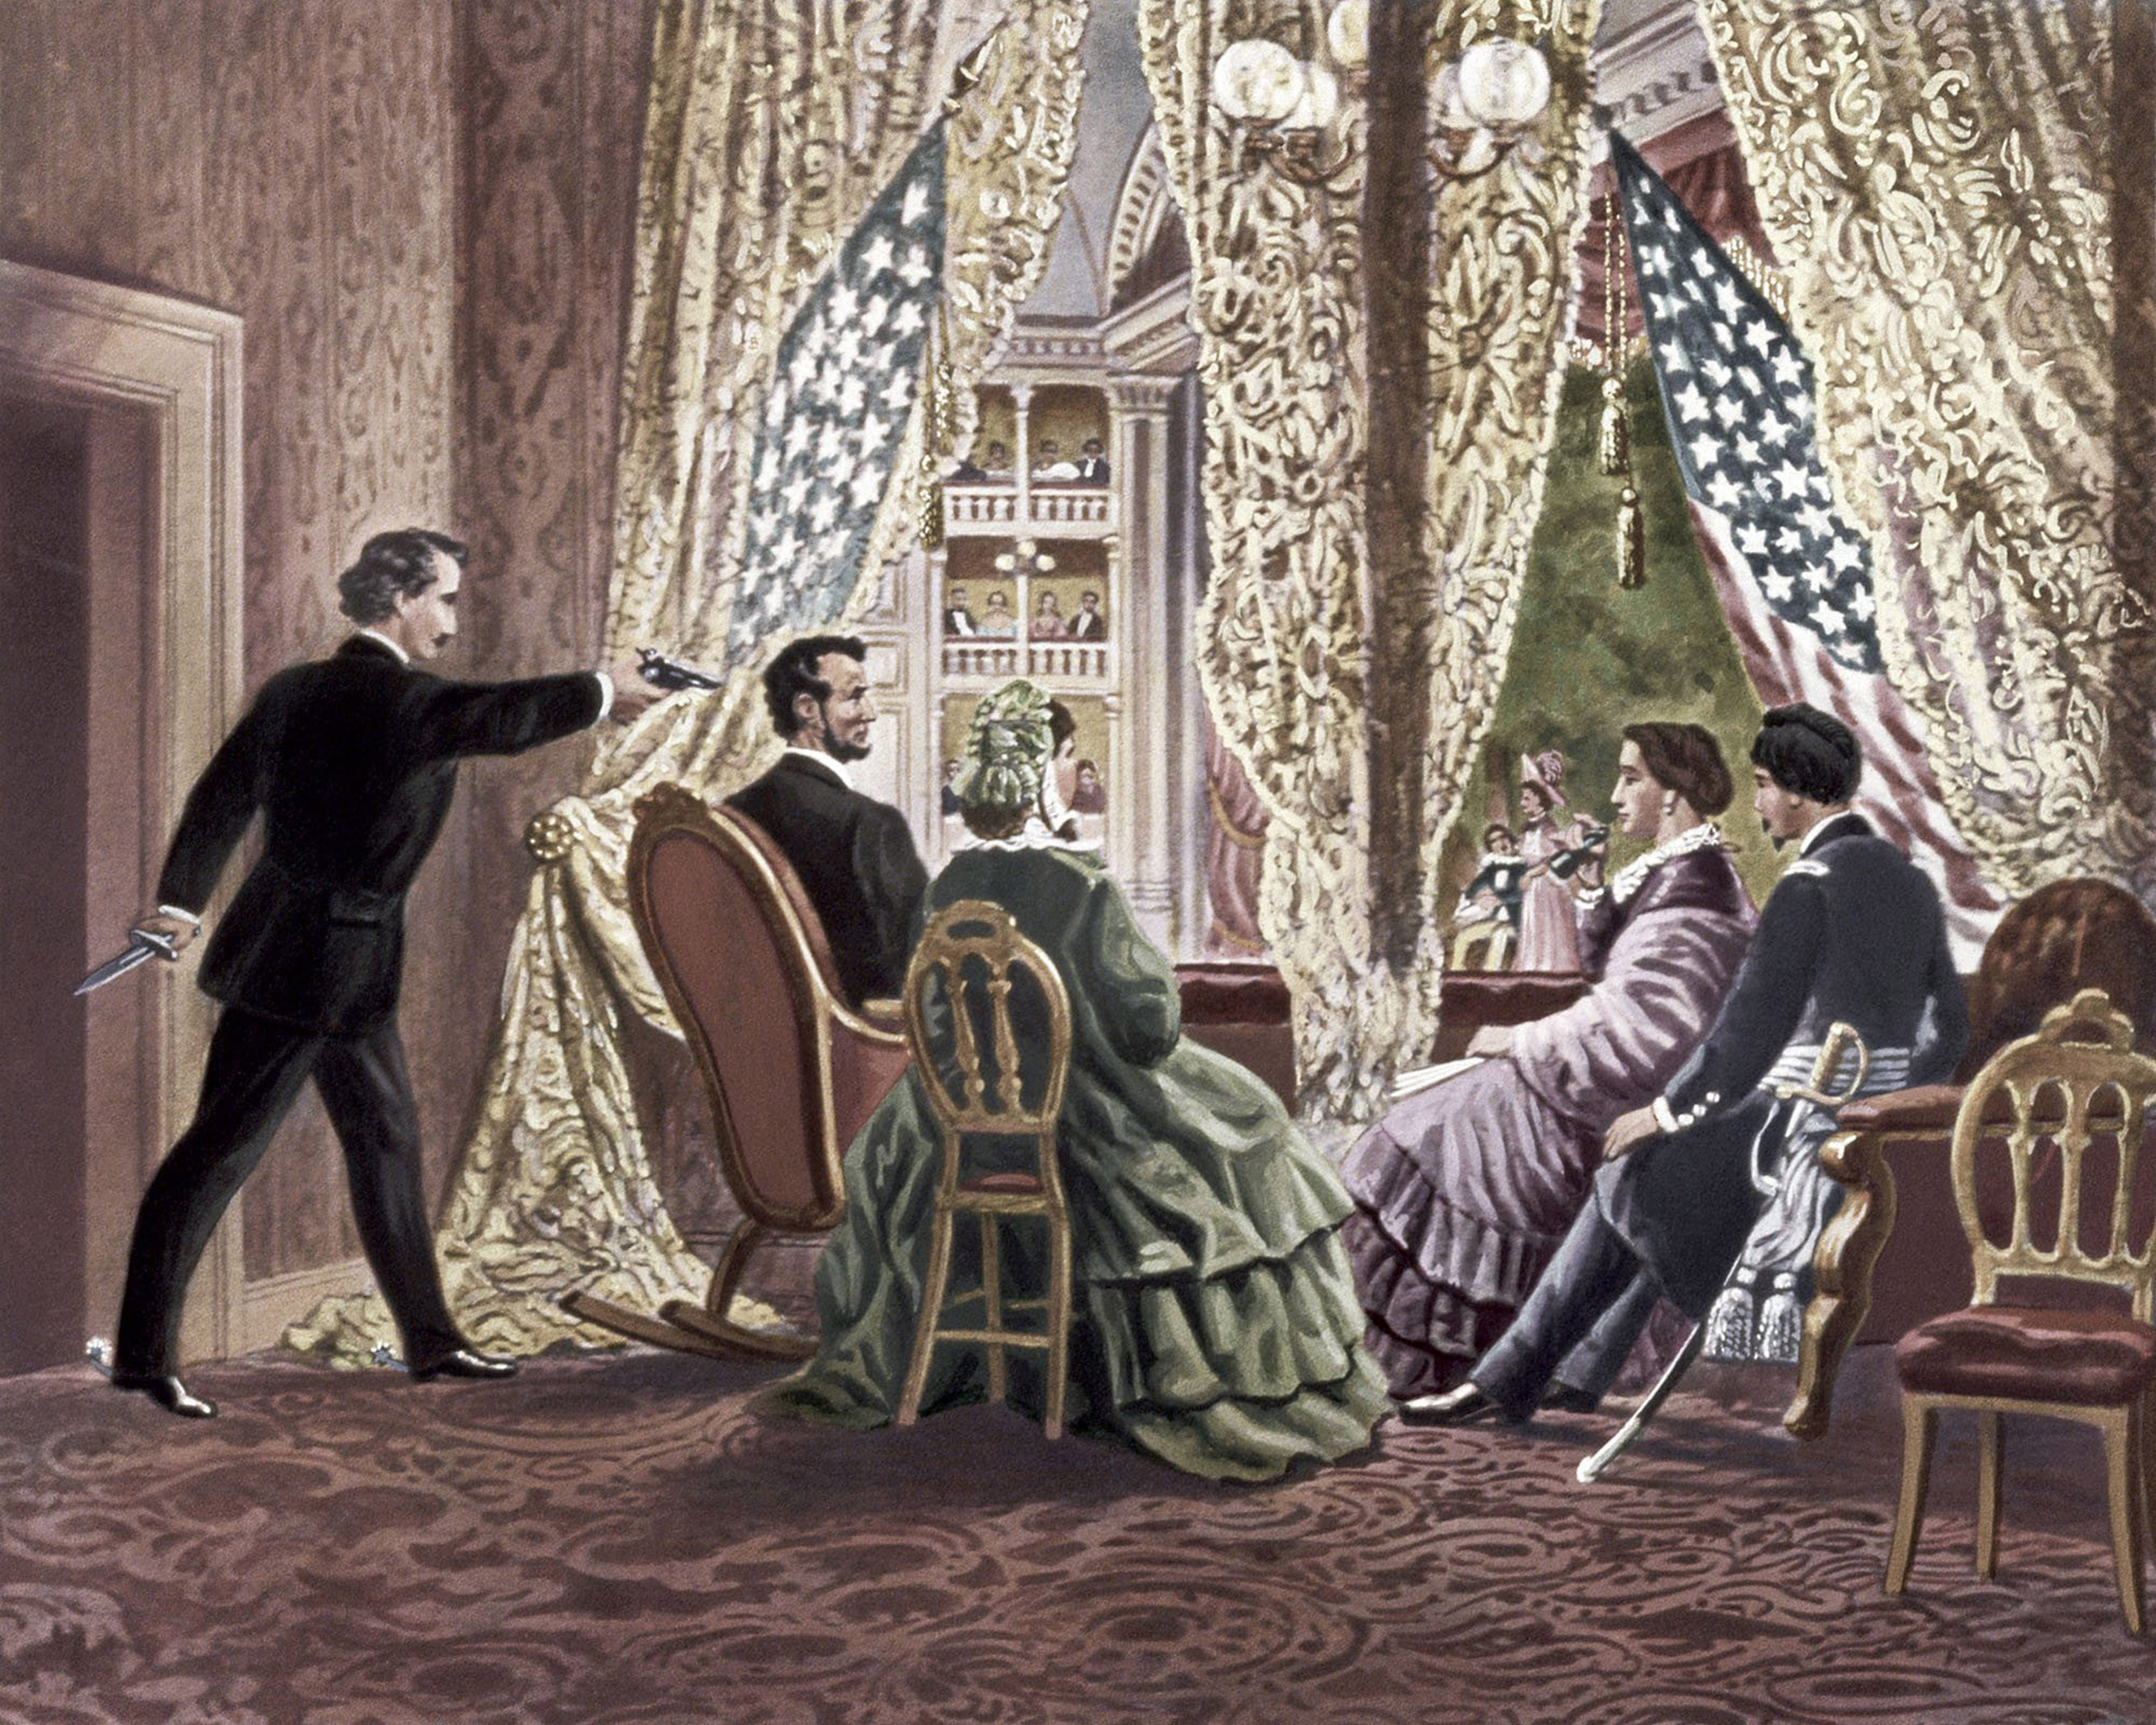 The Assassination of Abraham Lincoln, 1865